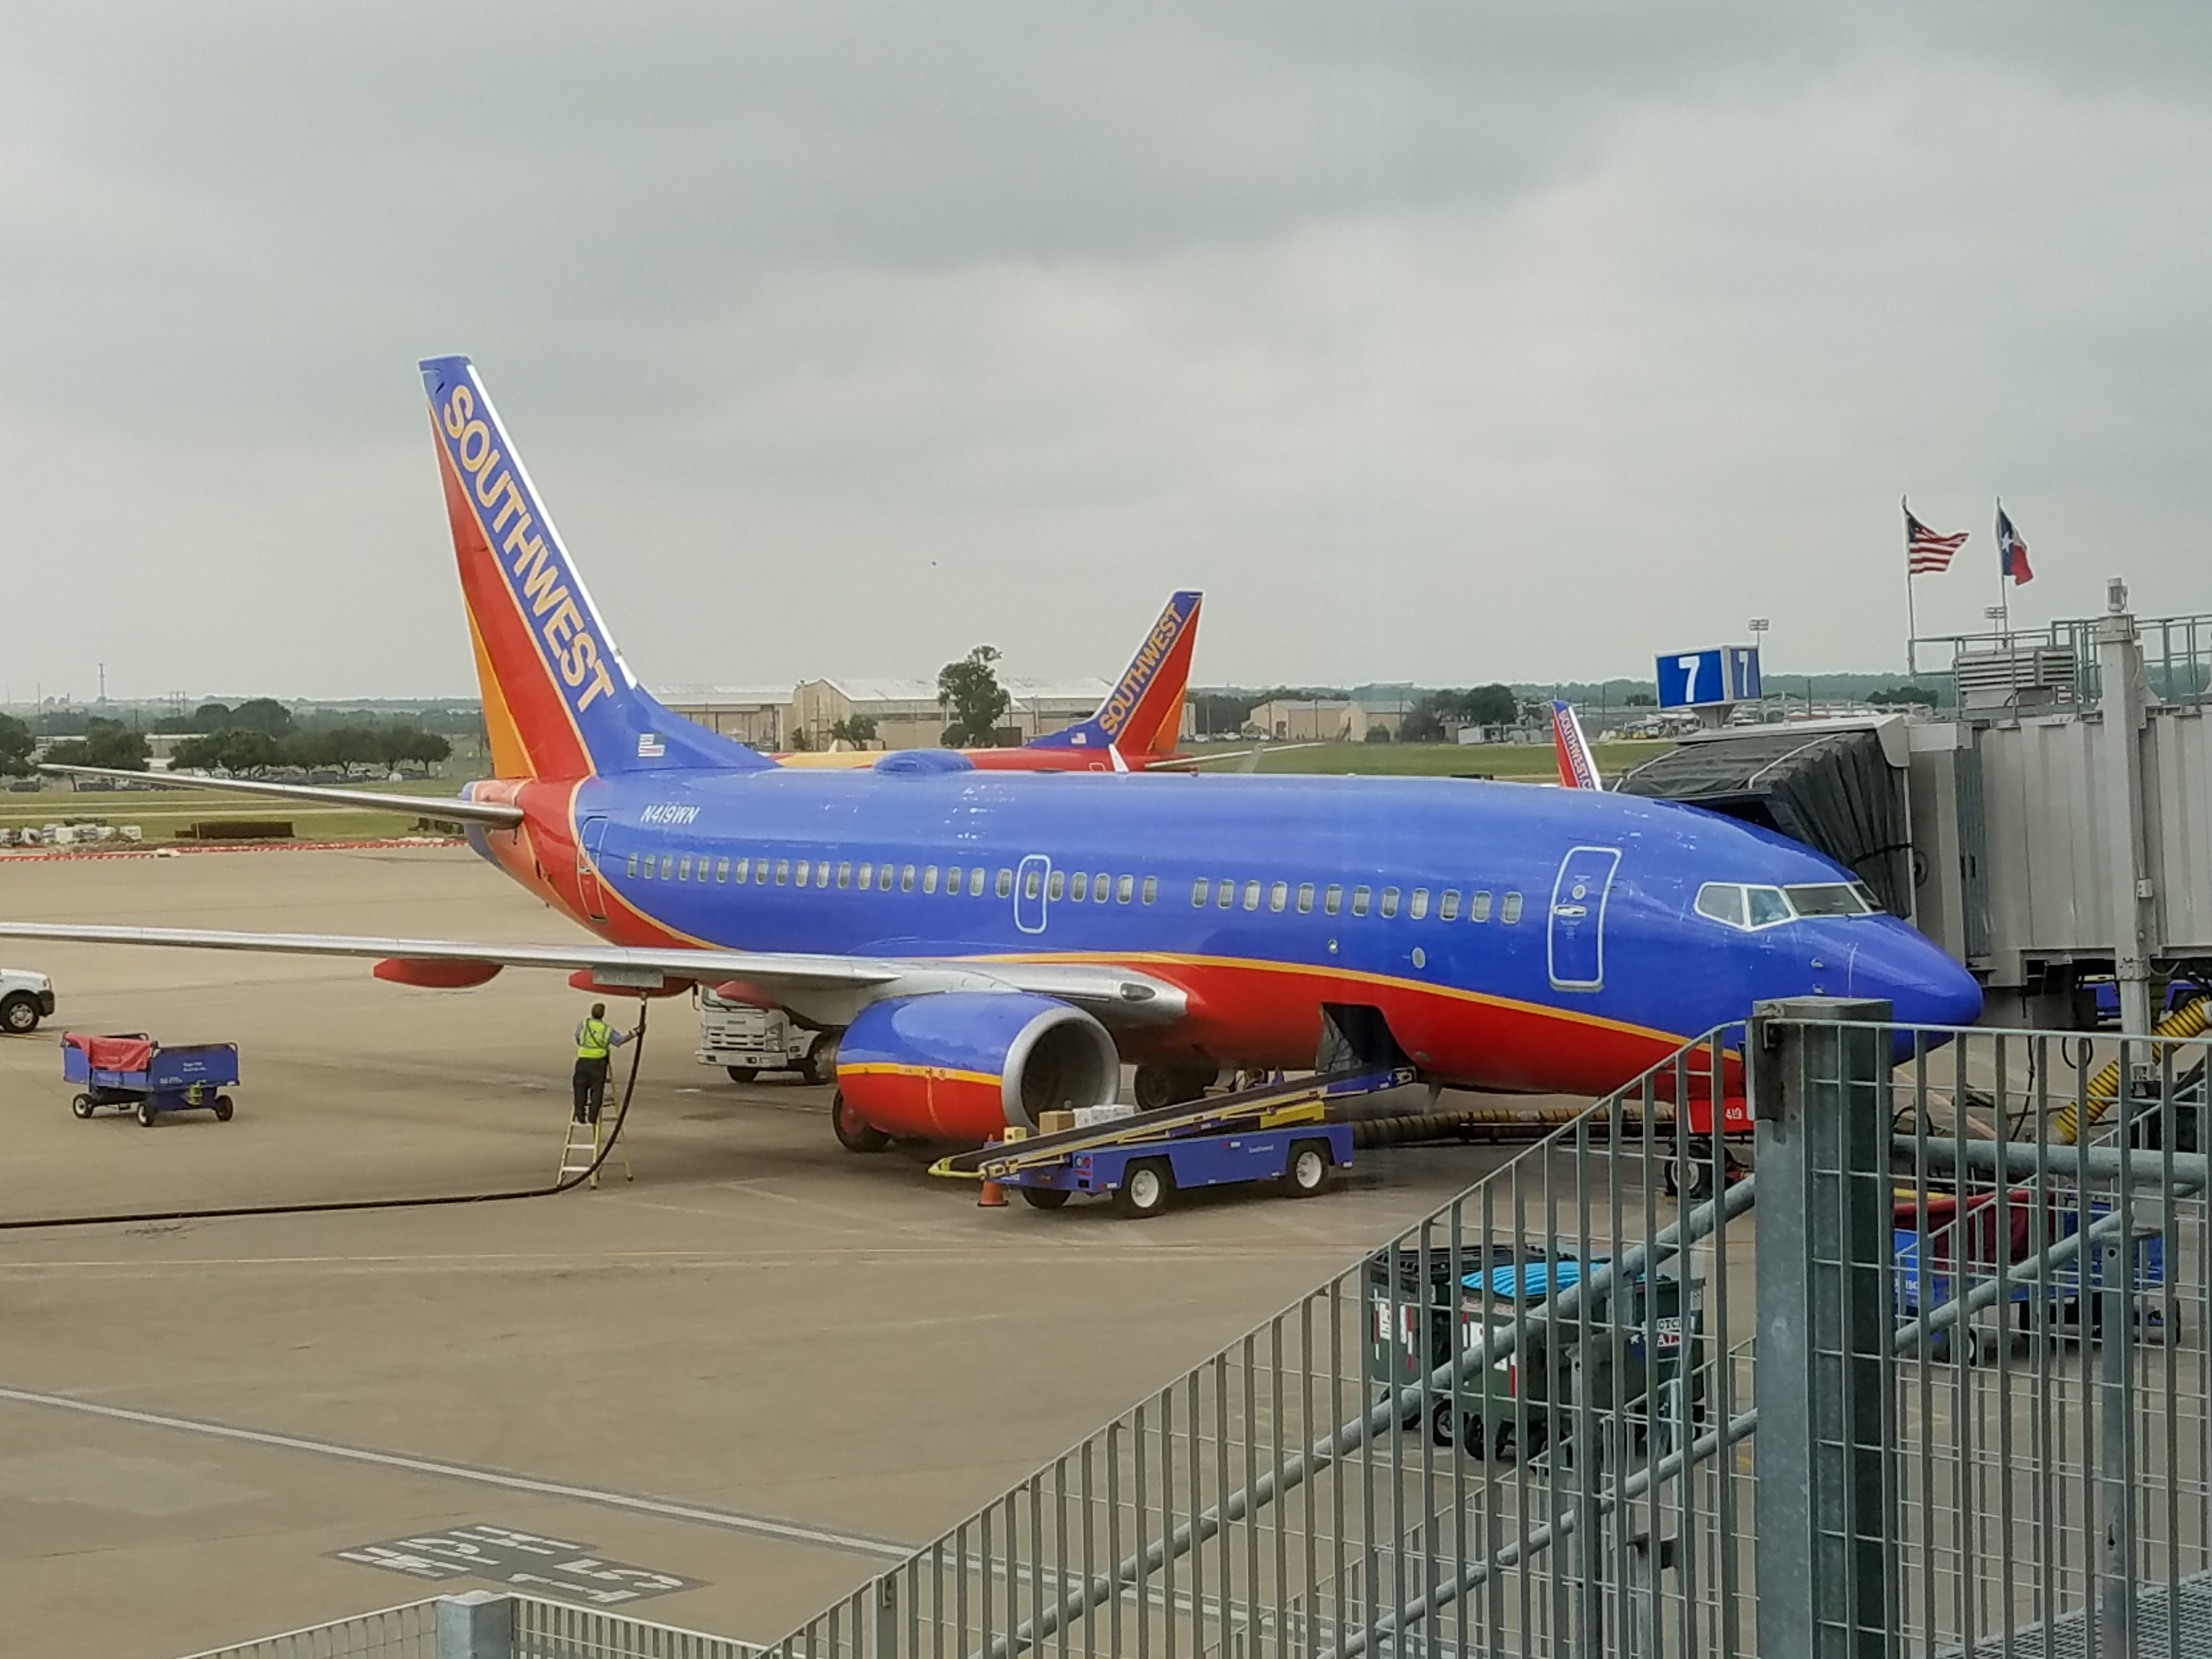 http://server.digimetriq.com/wp-content/uploads/2021/02/Things-I-Love-Most-About-The-Southwest-Airlines-Companion-Pass.jpg